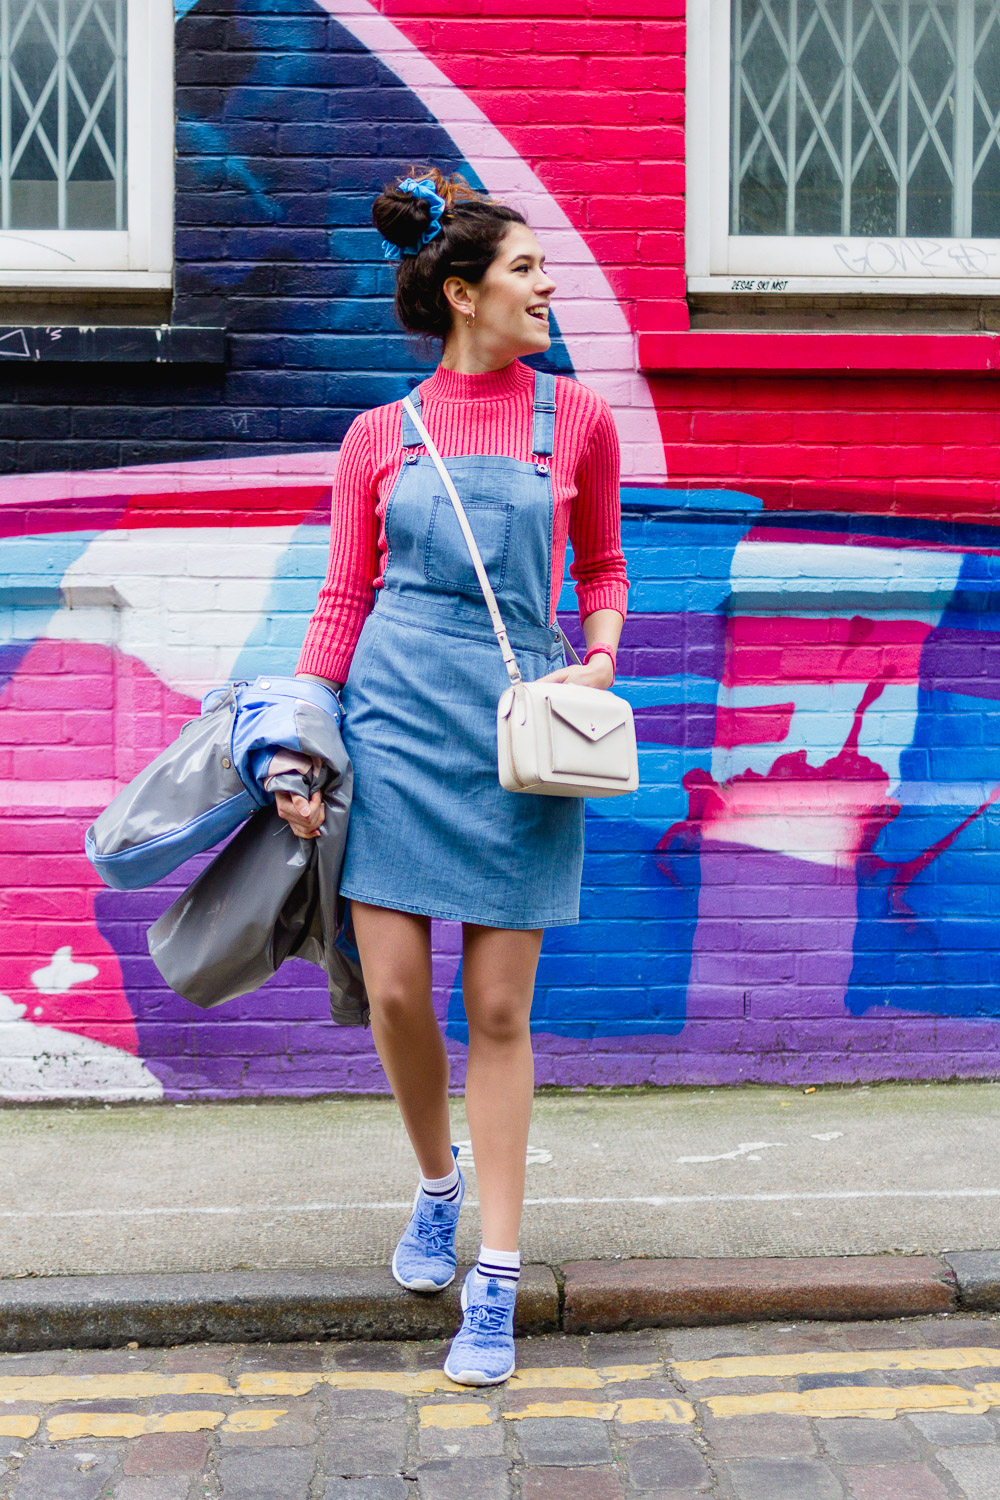 layered denim pinafore dress and pink knitted top